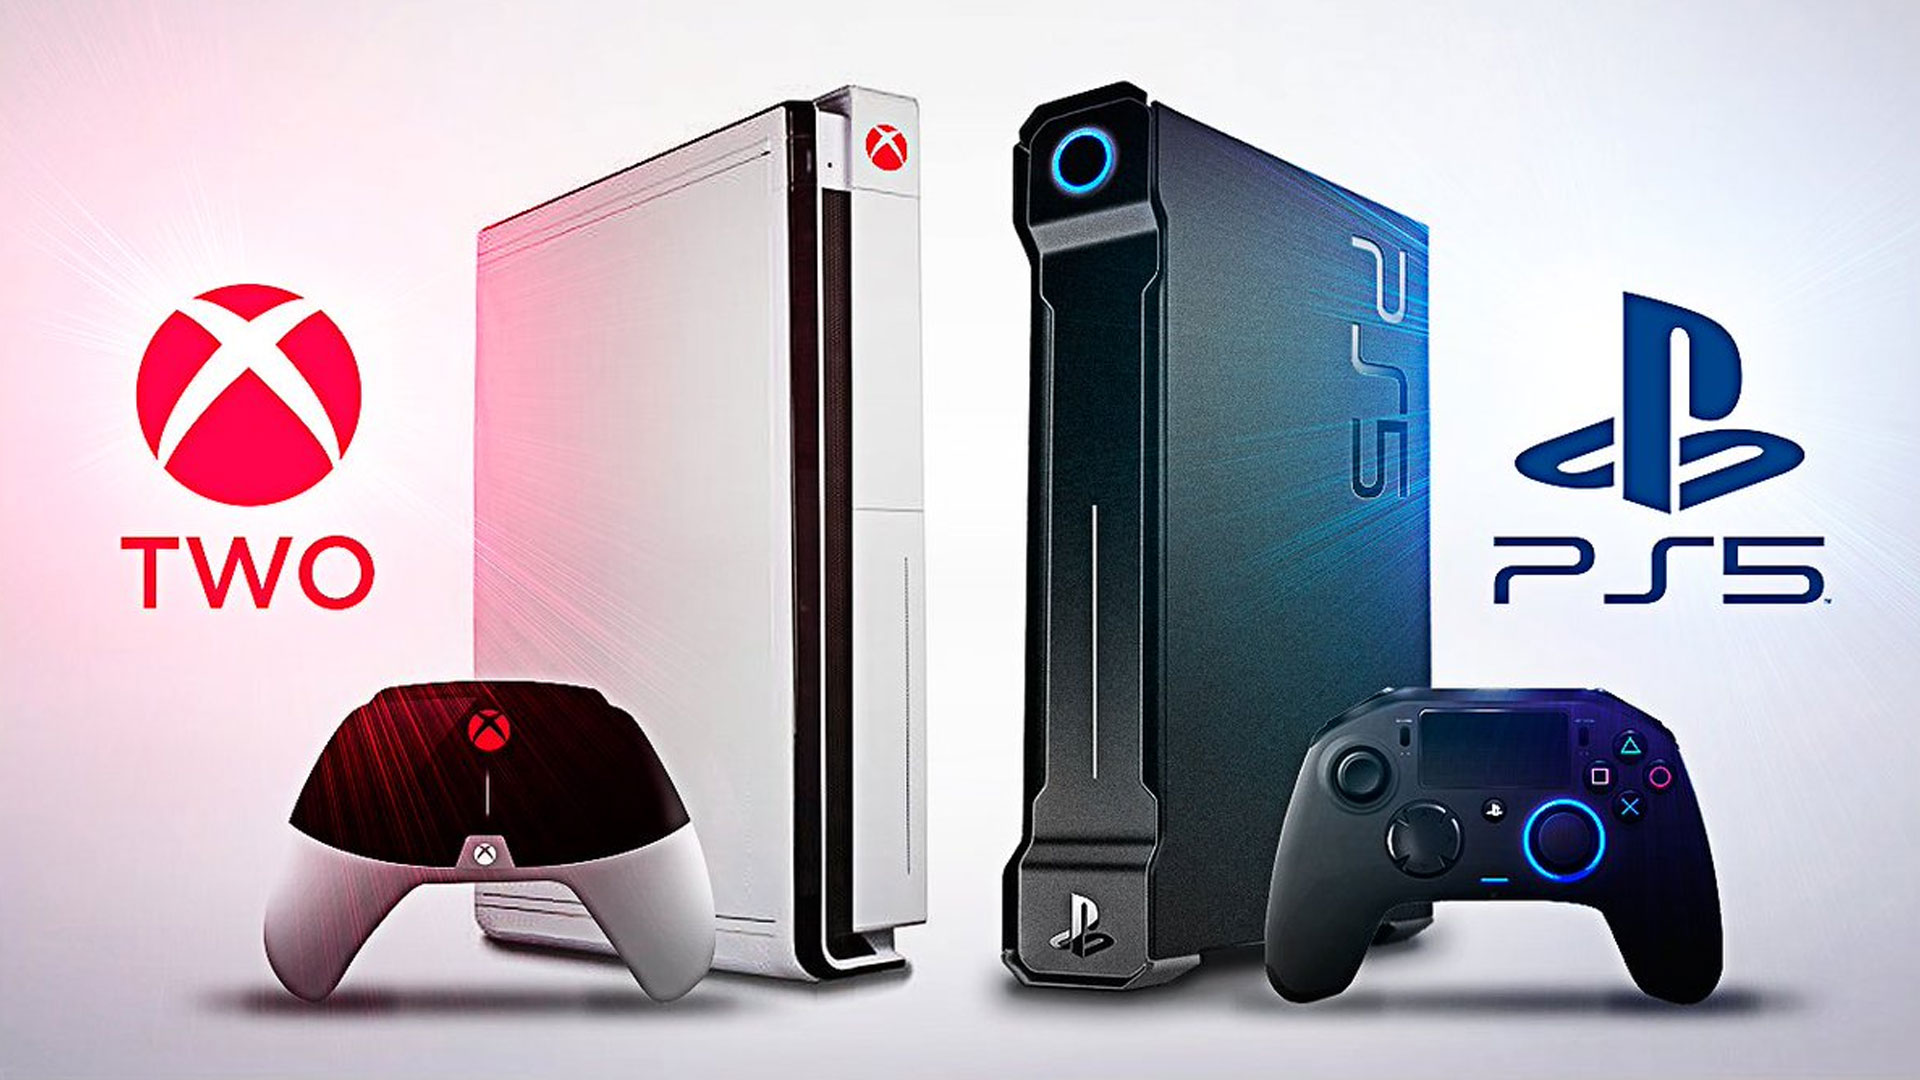 Xbox Scarlett Vs Playstation 5